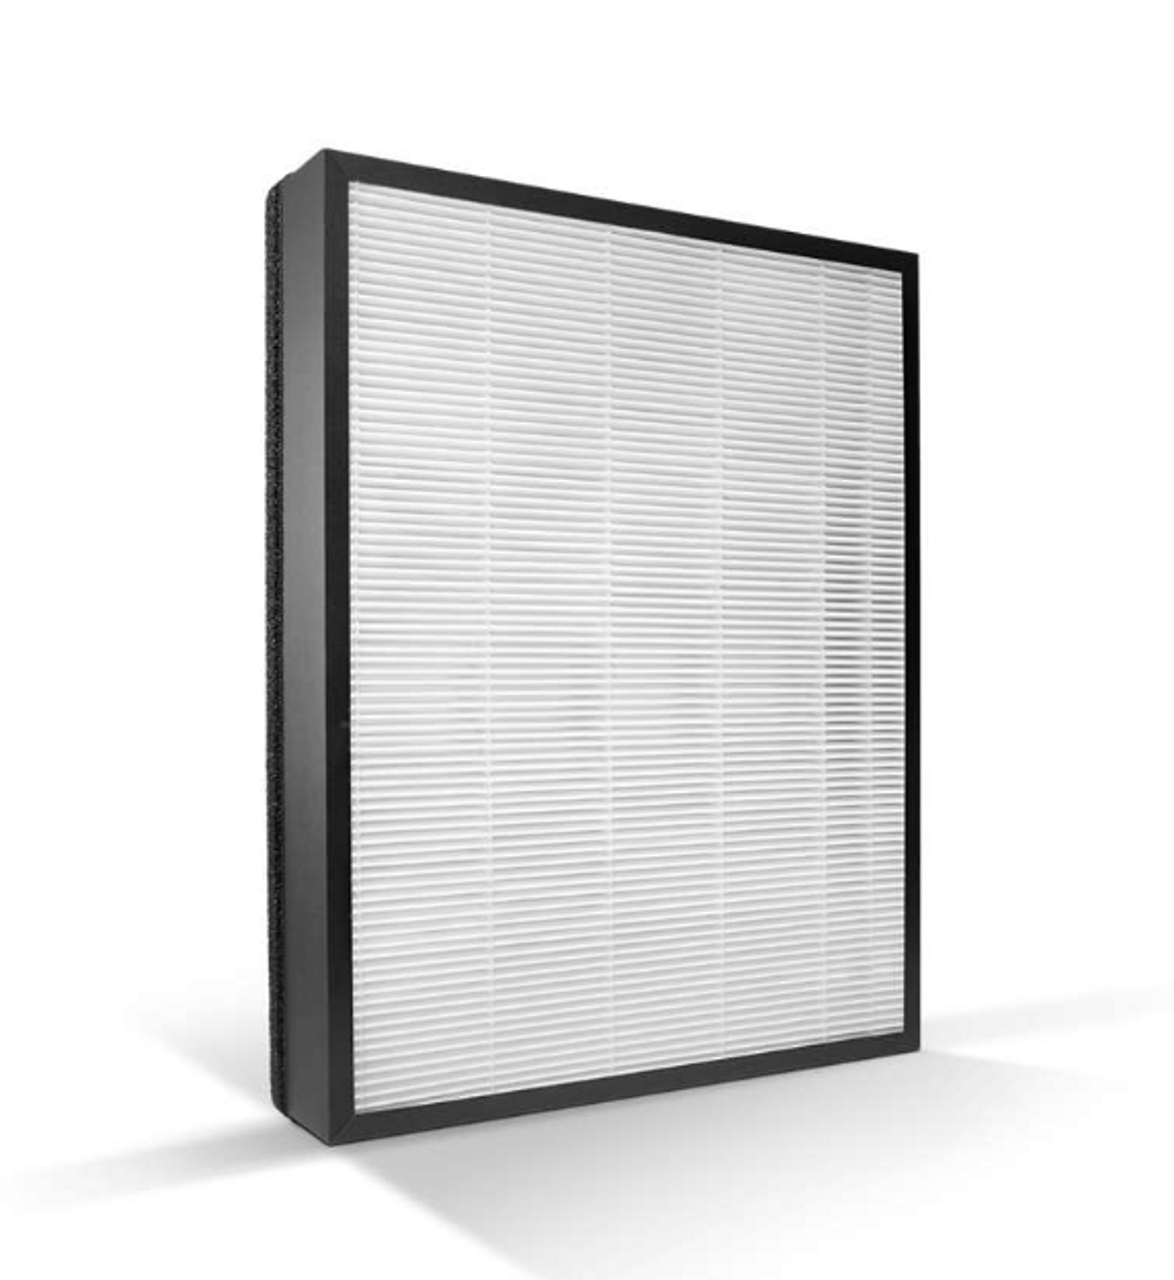 Philips FY6172/10 NanoProtect HEPA Filter For Air Series 6000 Purifiers